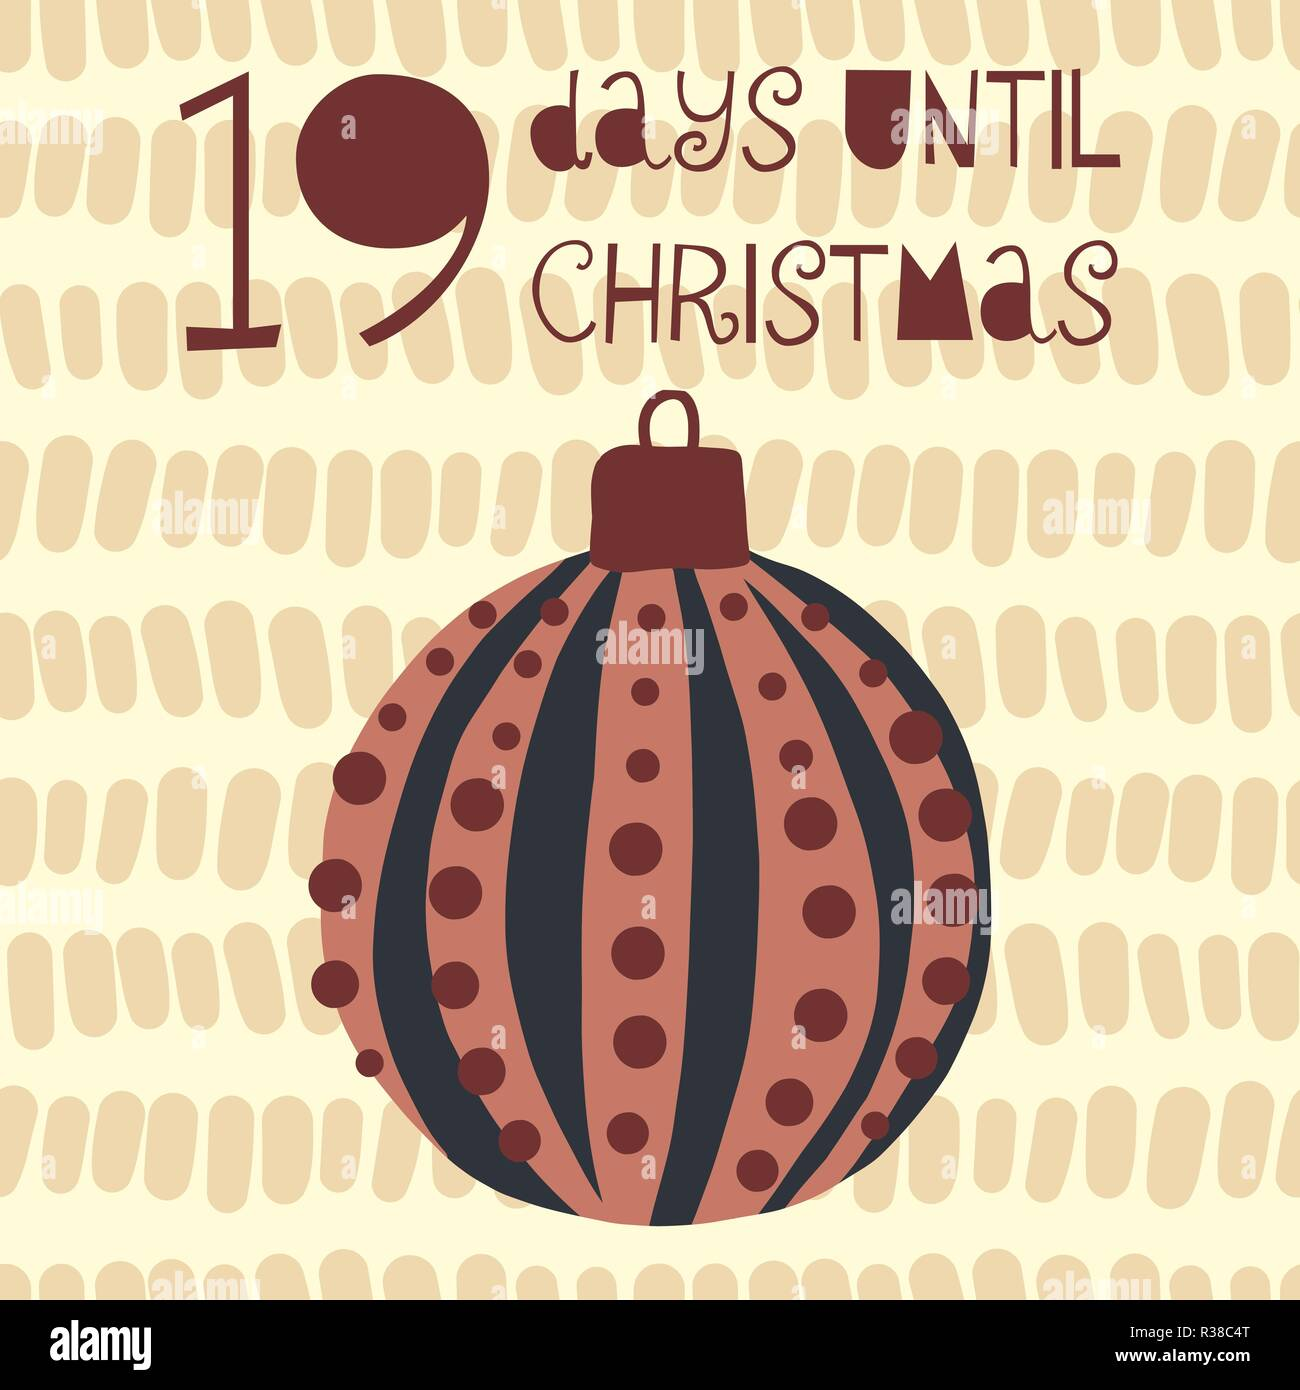 Days Until Christmas Countdown.19 Days Until Christmas Vector Illustration Christmas